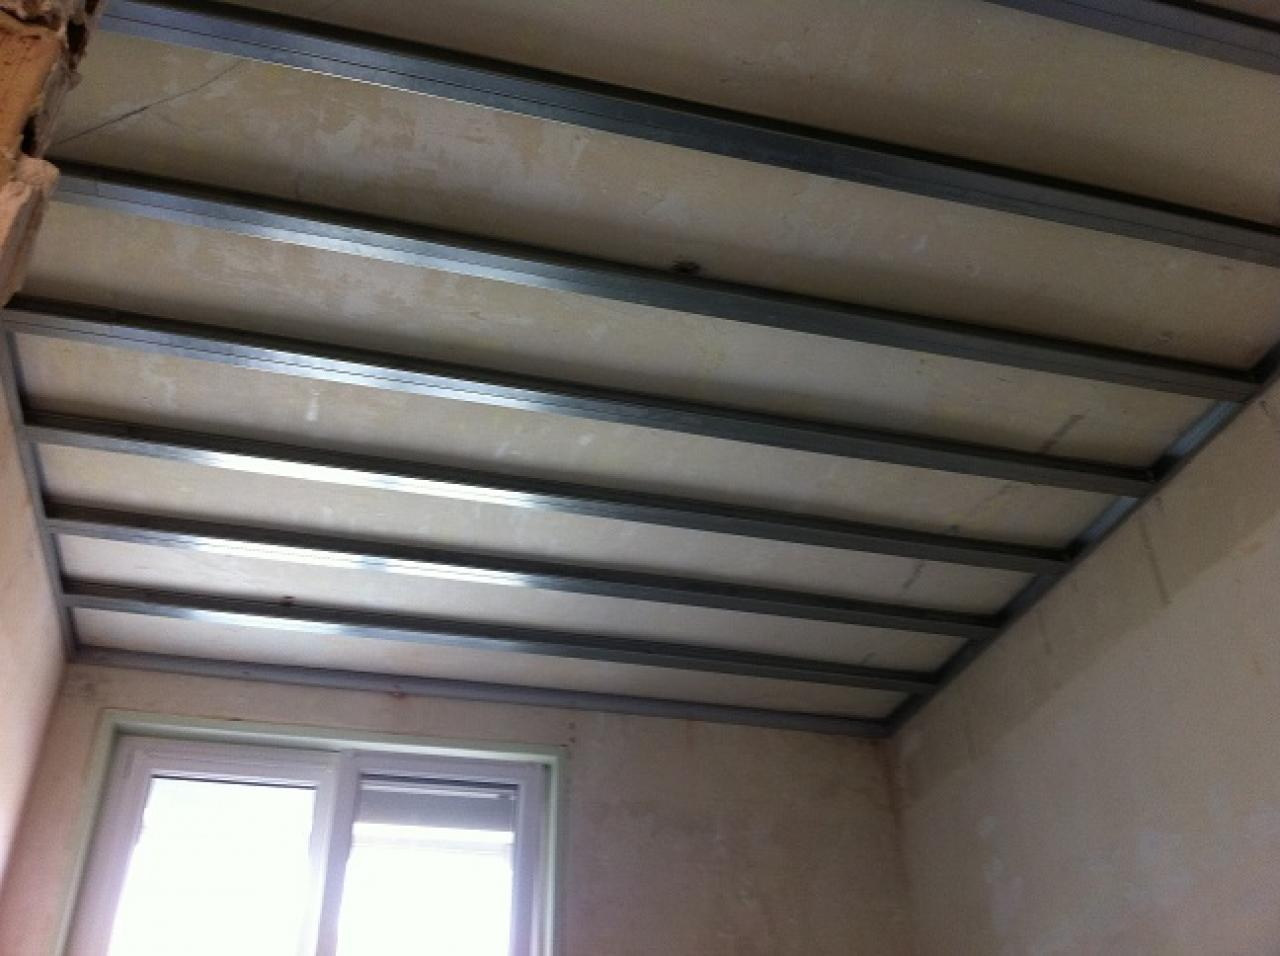 Comment faire un plafond en ba13 for Ba13 pour plafond